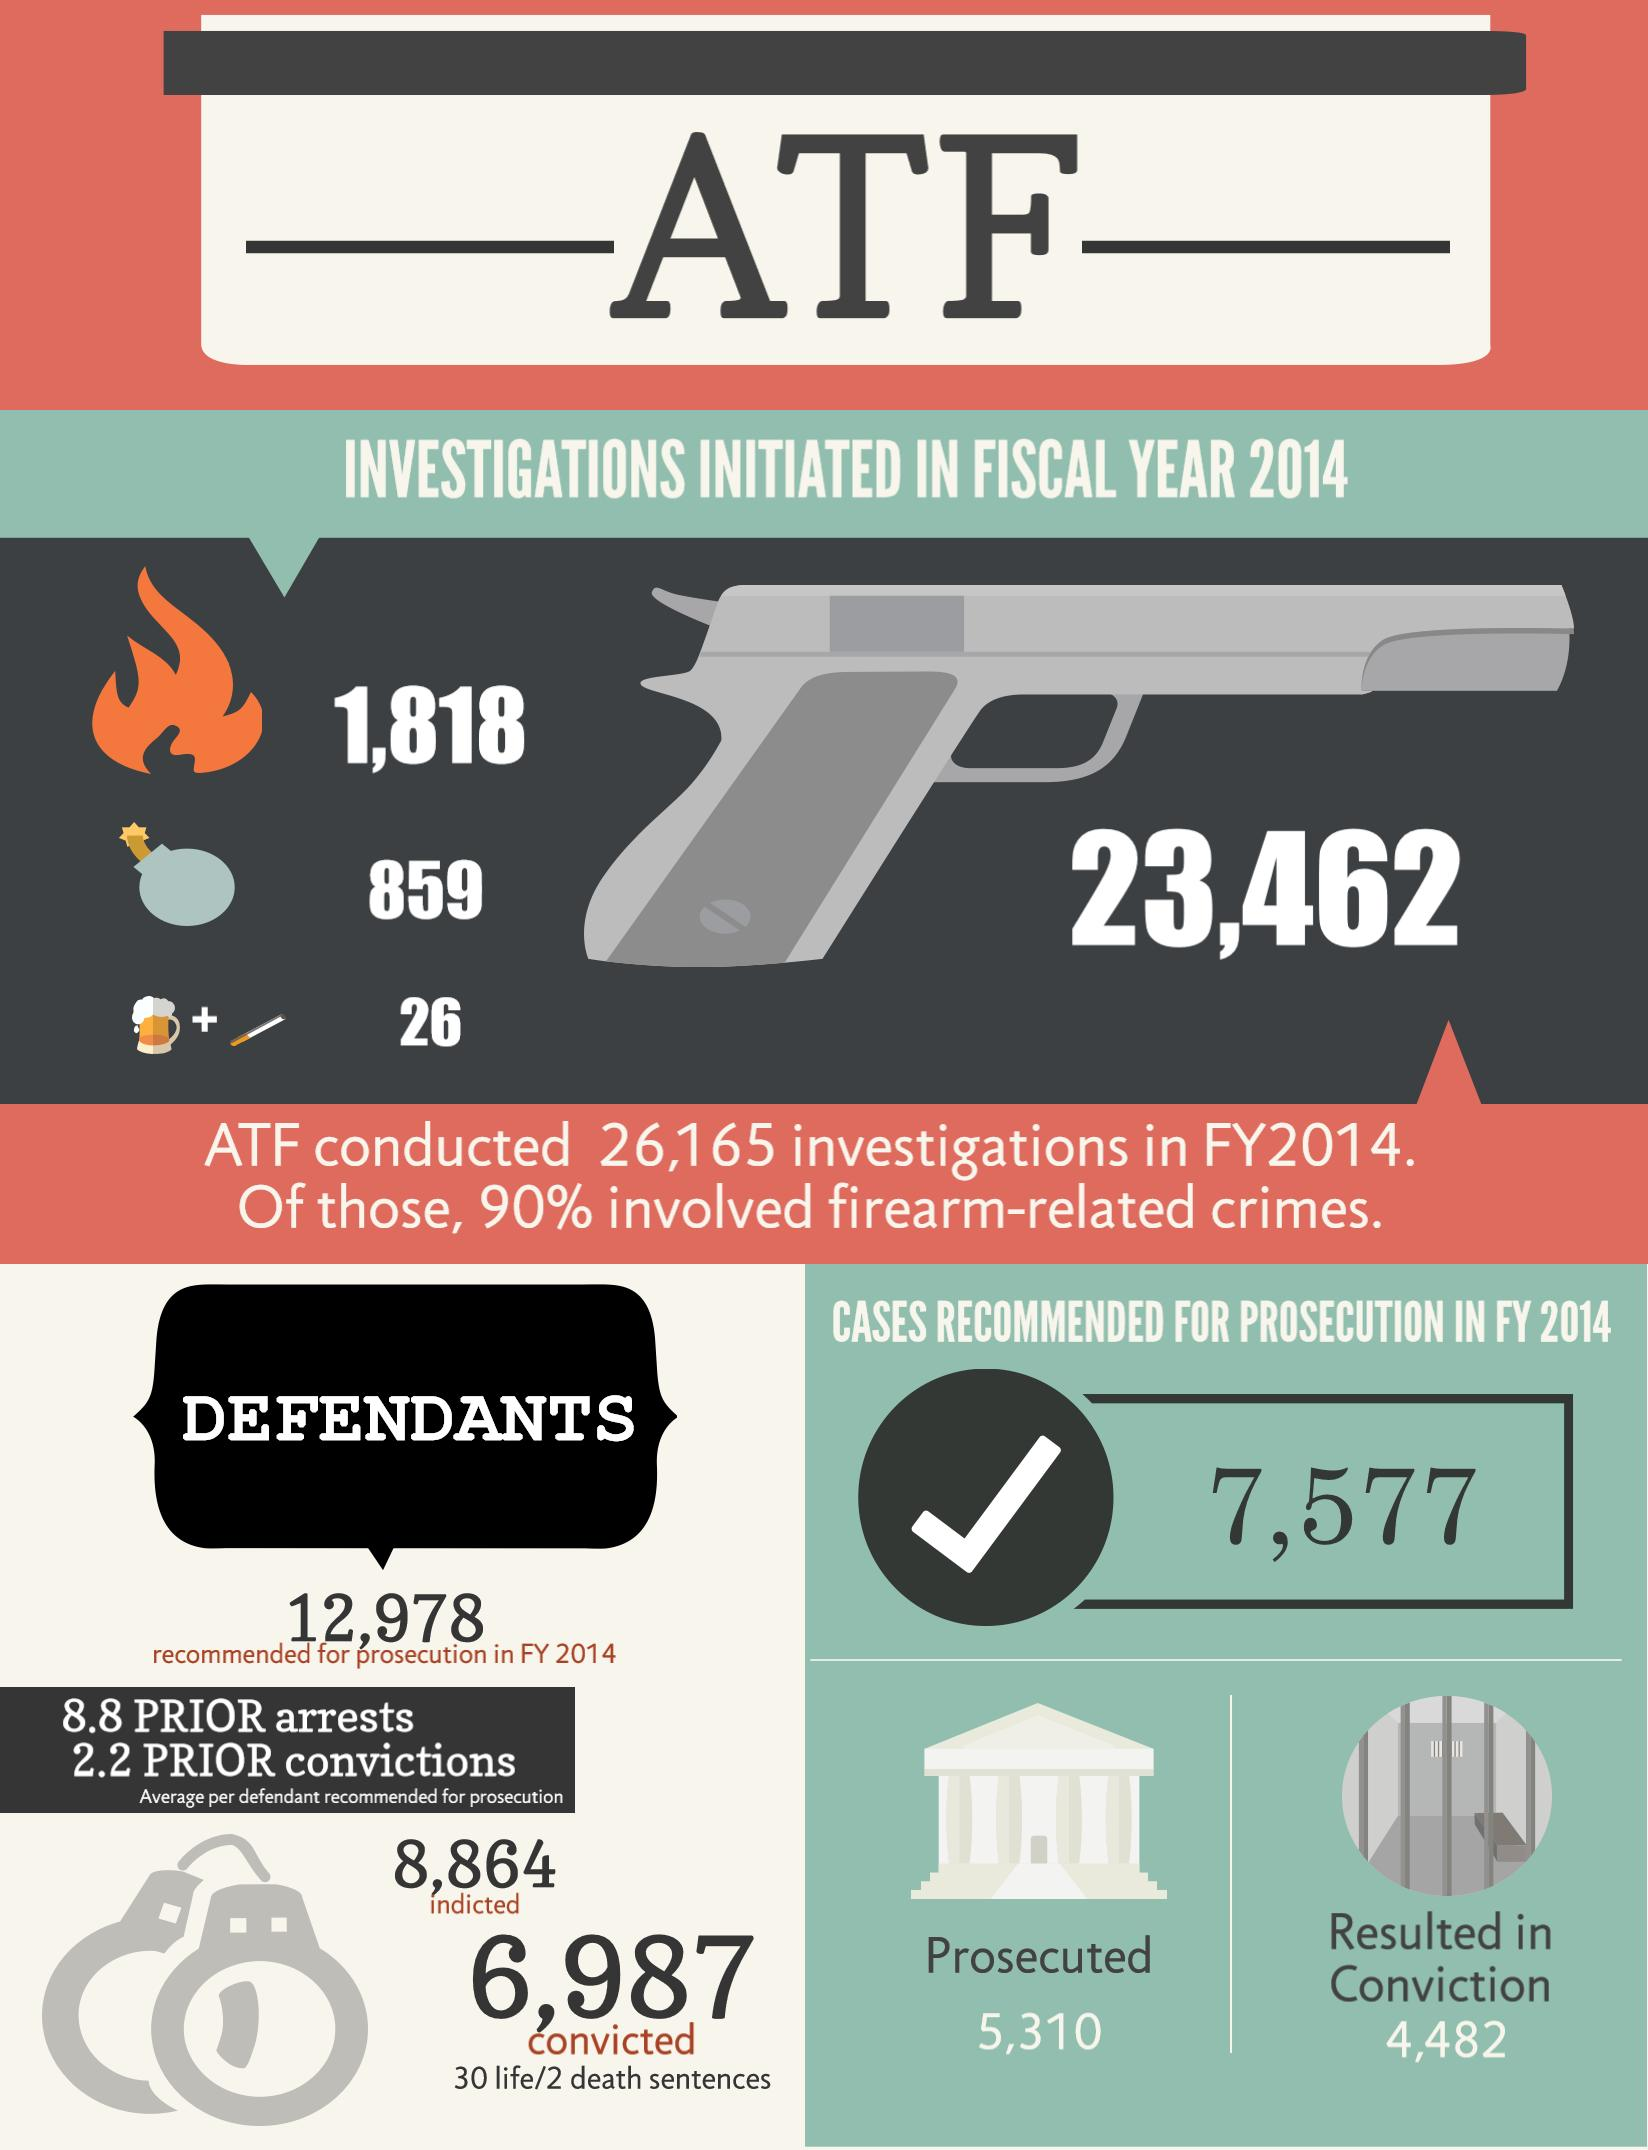 1,818 arson, 859 explosives and 26 alcohol and tobacco and 23,462 firearms related ATF Investigations were initiated in fiscal year 2014. ATF conducted 26,165 investigation in FY2014 of those, 90% involved firearm-related crimes.